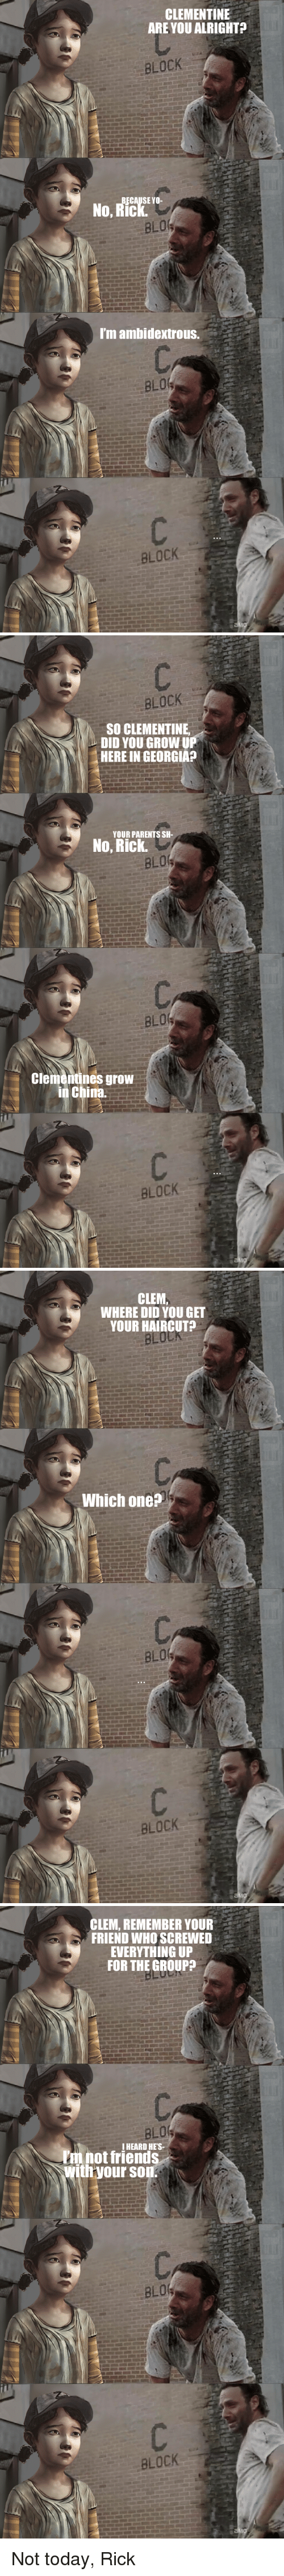 HeyCarl: CLEMENTINE  ARE YOU ALRIGHT?  BLOCK  CAUSE YO-  BLO  I'm ambidextrous  BLOCK   BLOCK  SO CLEMENTINE  DID YOU GROW UP  HERE IN GEORGIA?  YOUR PARENTS SH-  No, Rick.  BLO  clementines grow  in China.  BLOCK   CLEM  WHERE DID YOU GET  YOUR HAIRCUT  Which one?  BLOCK   CLEM, REMEMBER YOUR  FRIEND WHOSCREWED  EVERYTHING UP  FOR THE GROUP  BLO  anot IHEARD HE'S  With your son.  BLOCK Not today, Rick